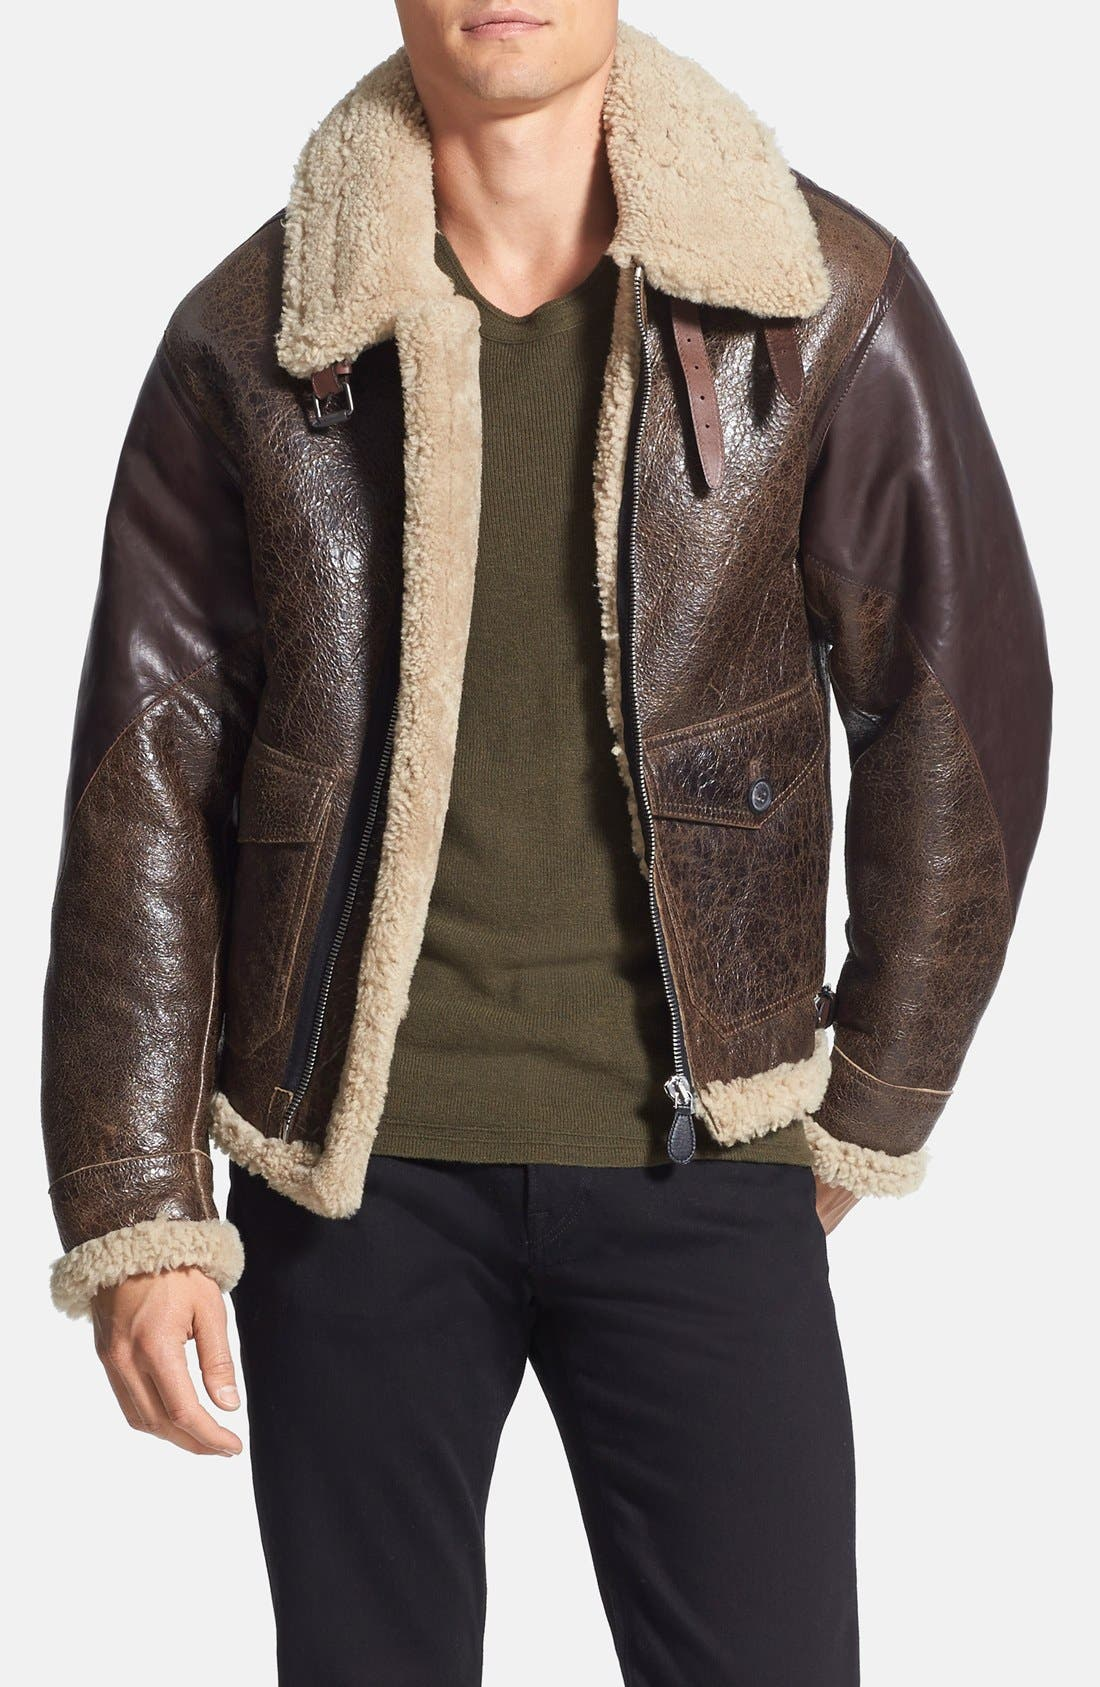 Alternate Image 1 Selected - Burberry Brit 'Ormsby' Distressed Leather Jacket with Lamb Shearling Trim